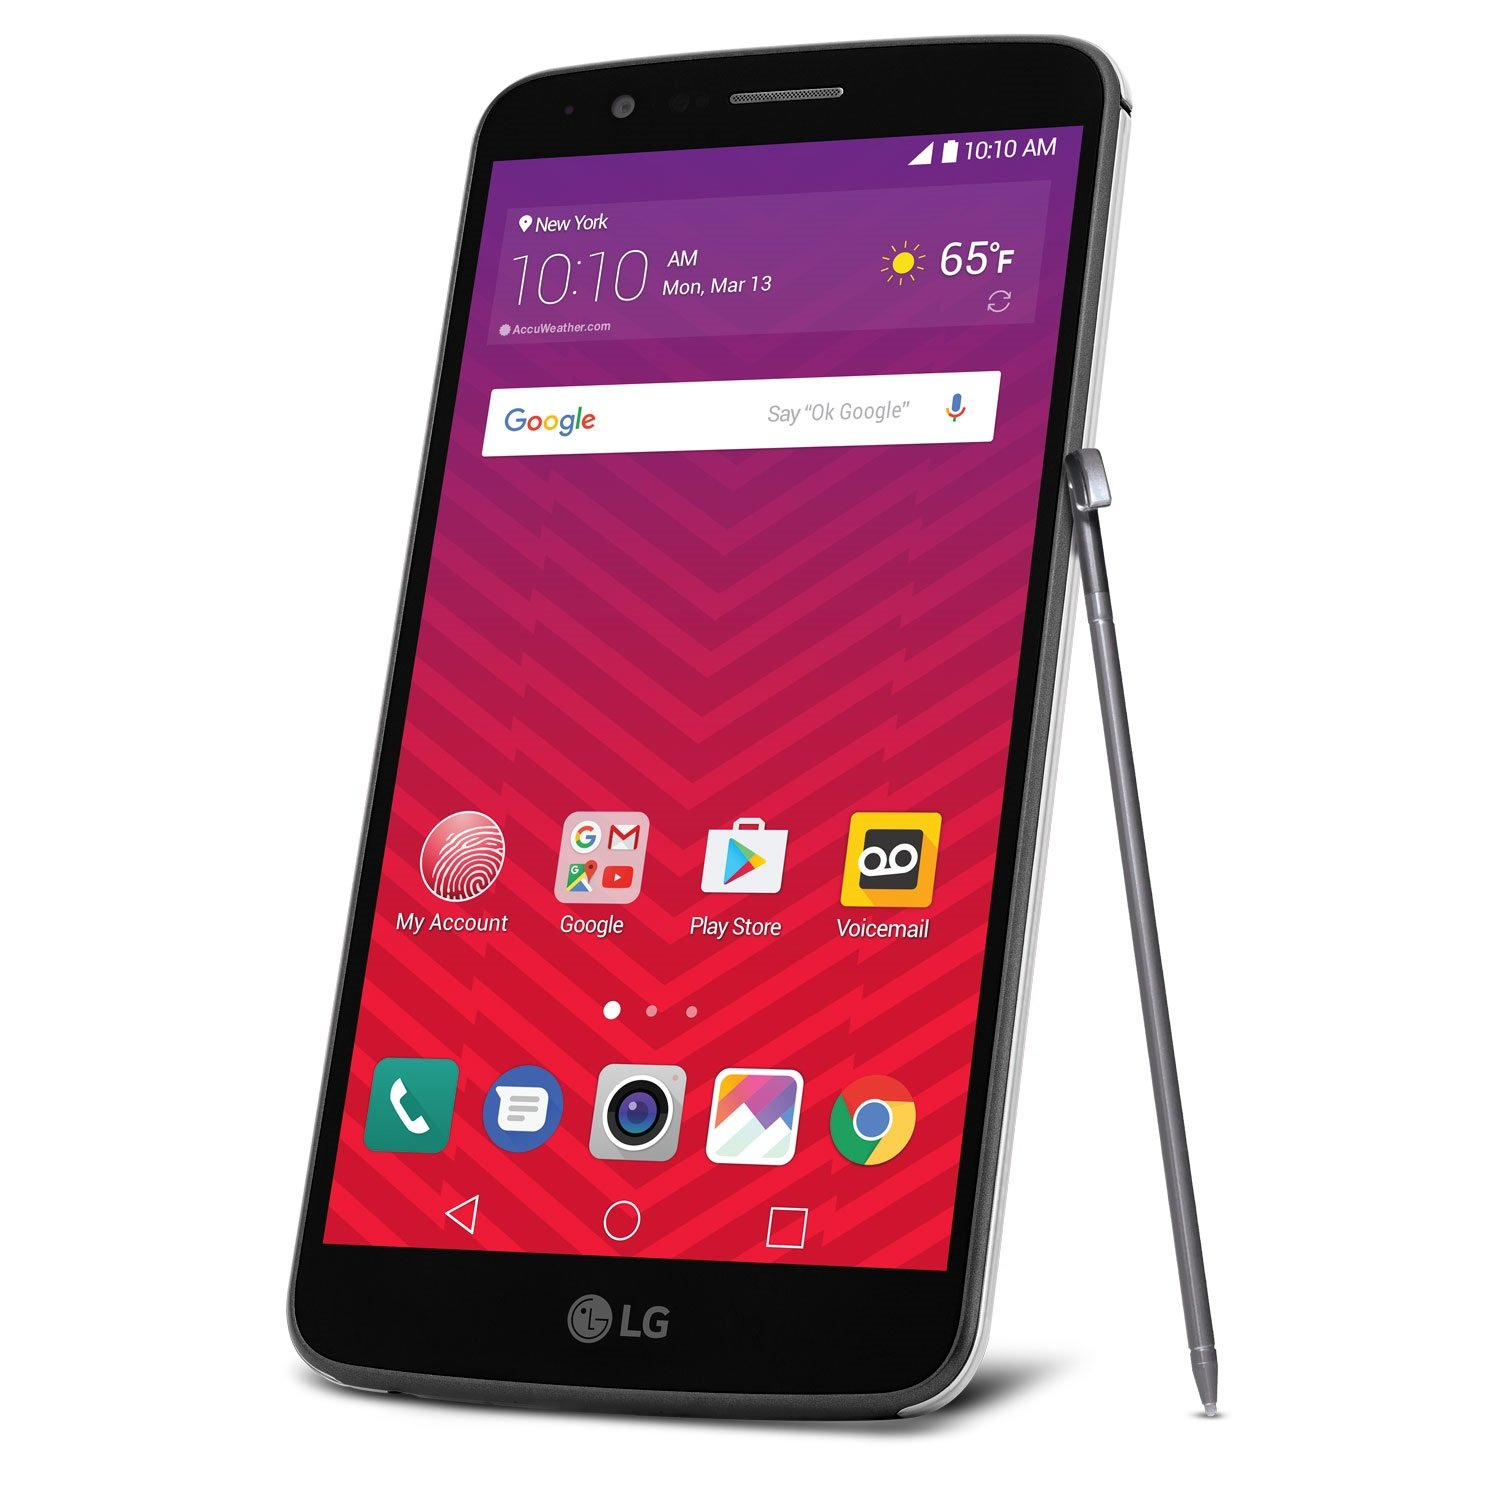 Amazon.com: LG Stylo 3 - Prepaid - Carrier Locked - Virgin Mobile: